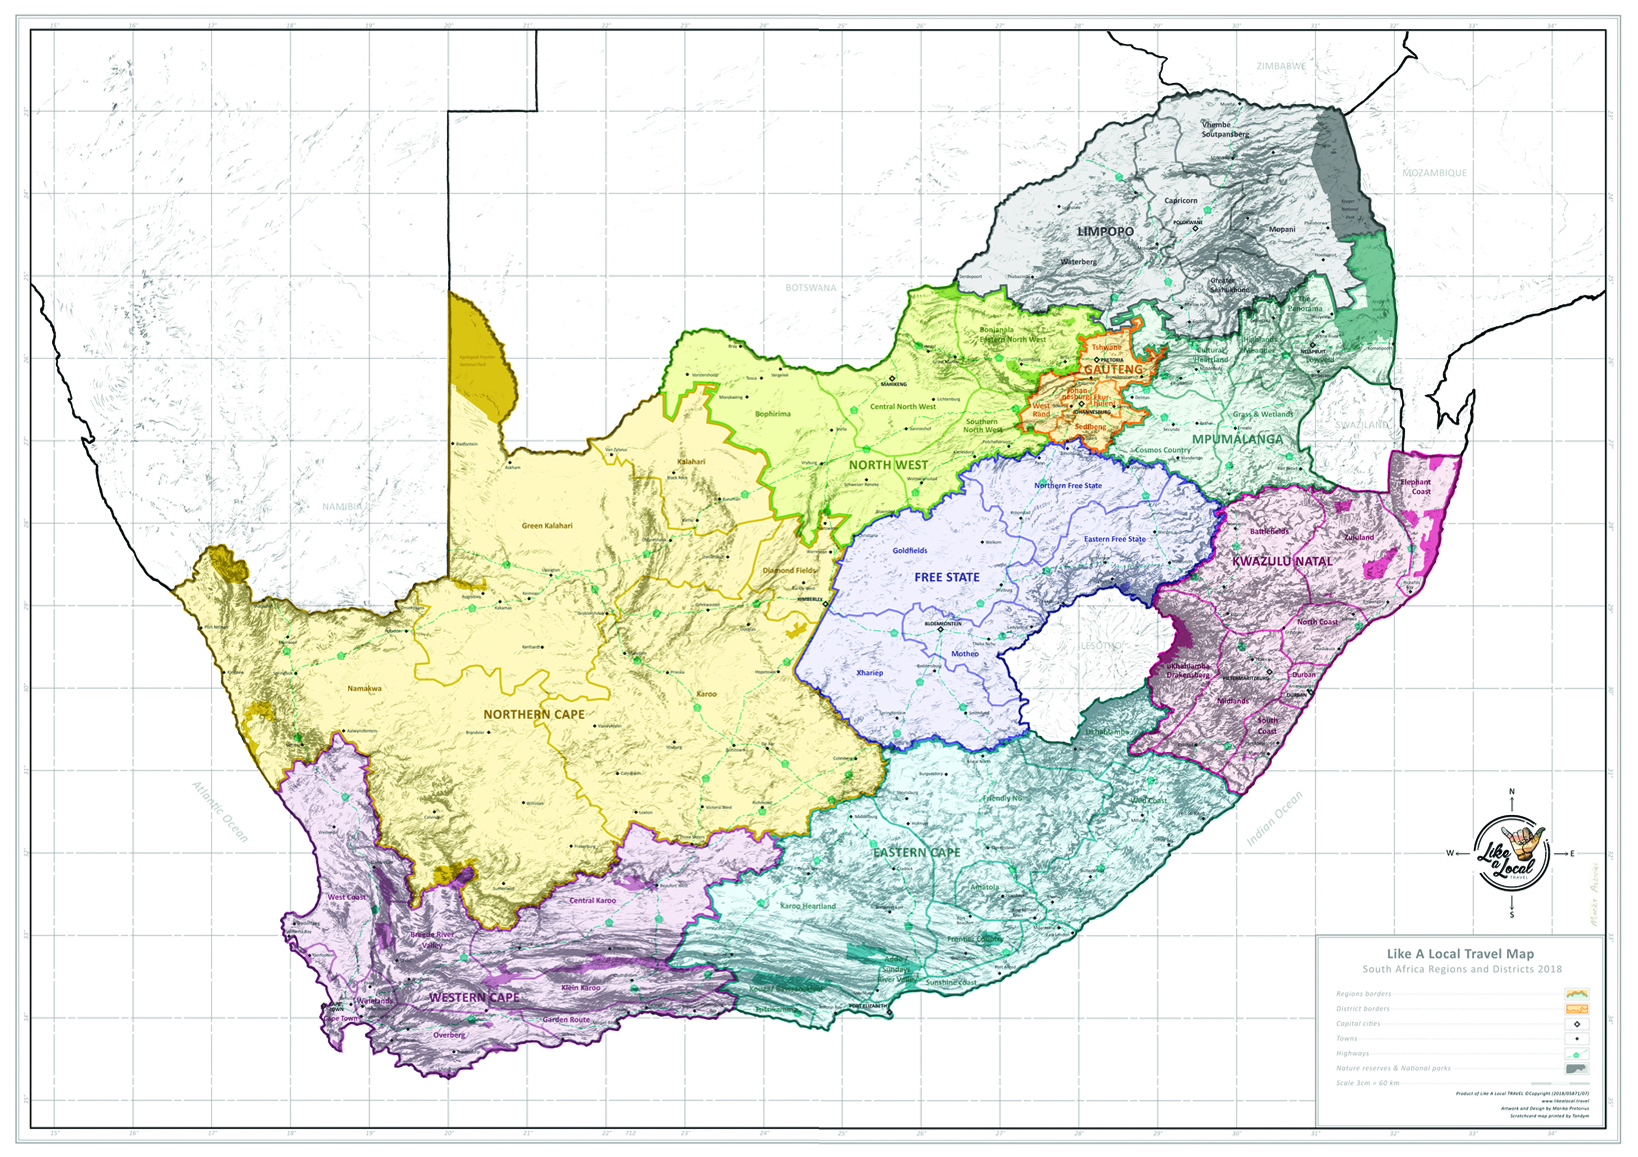 scratch map south africa Lal Large South African Map Like A Local Travel scratch map south africa